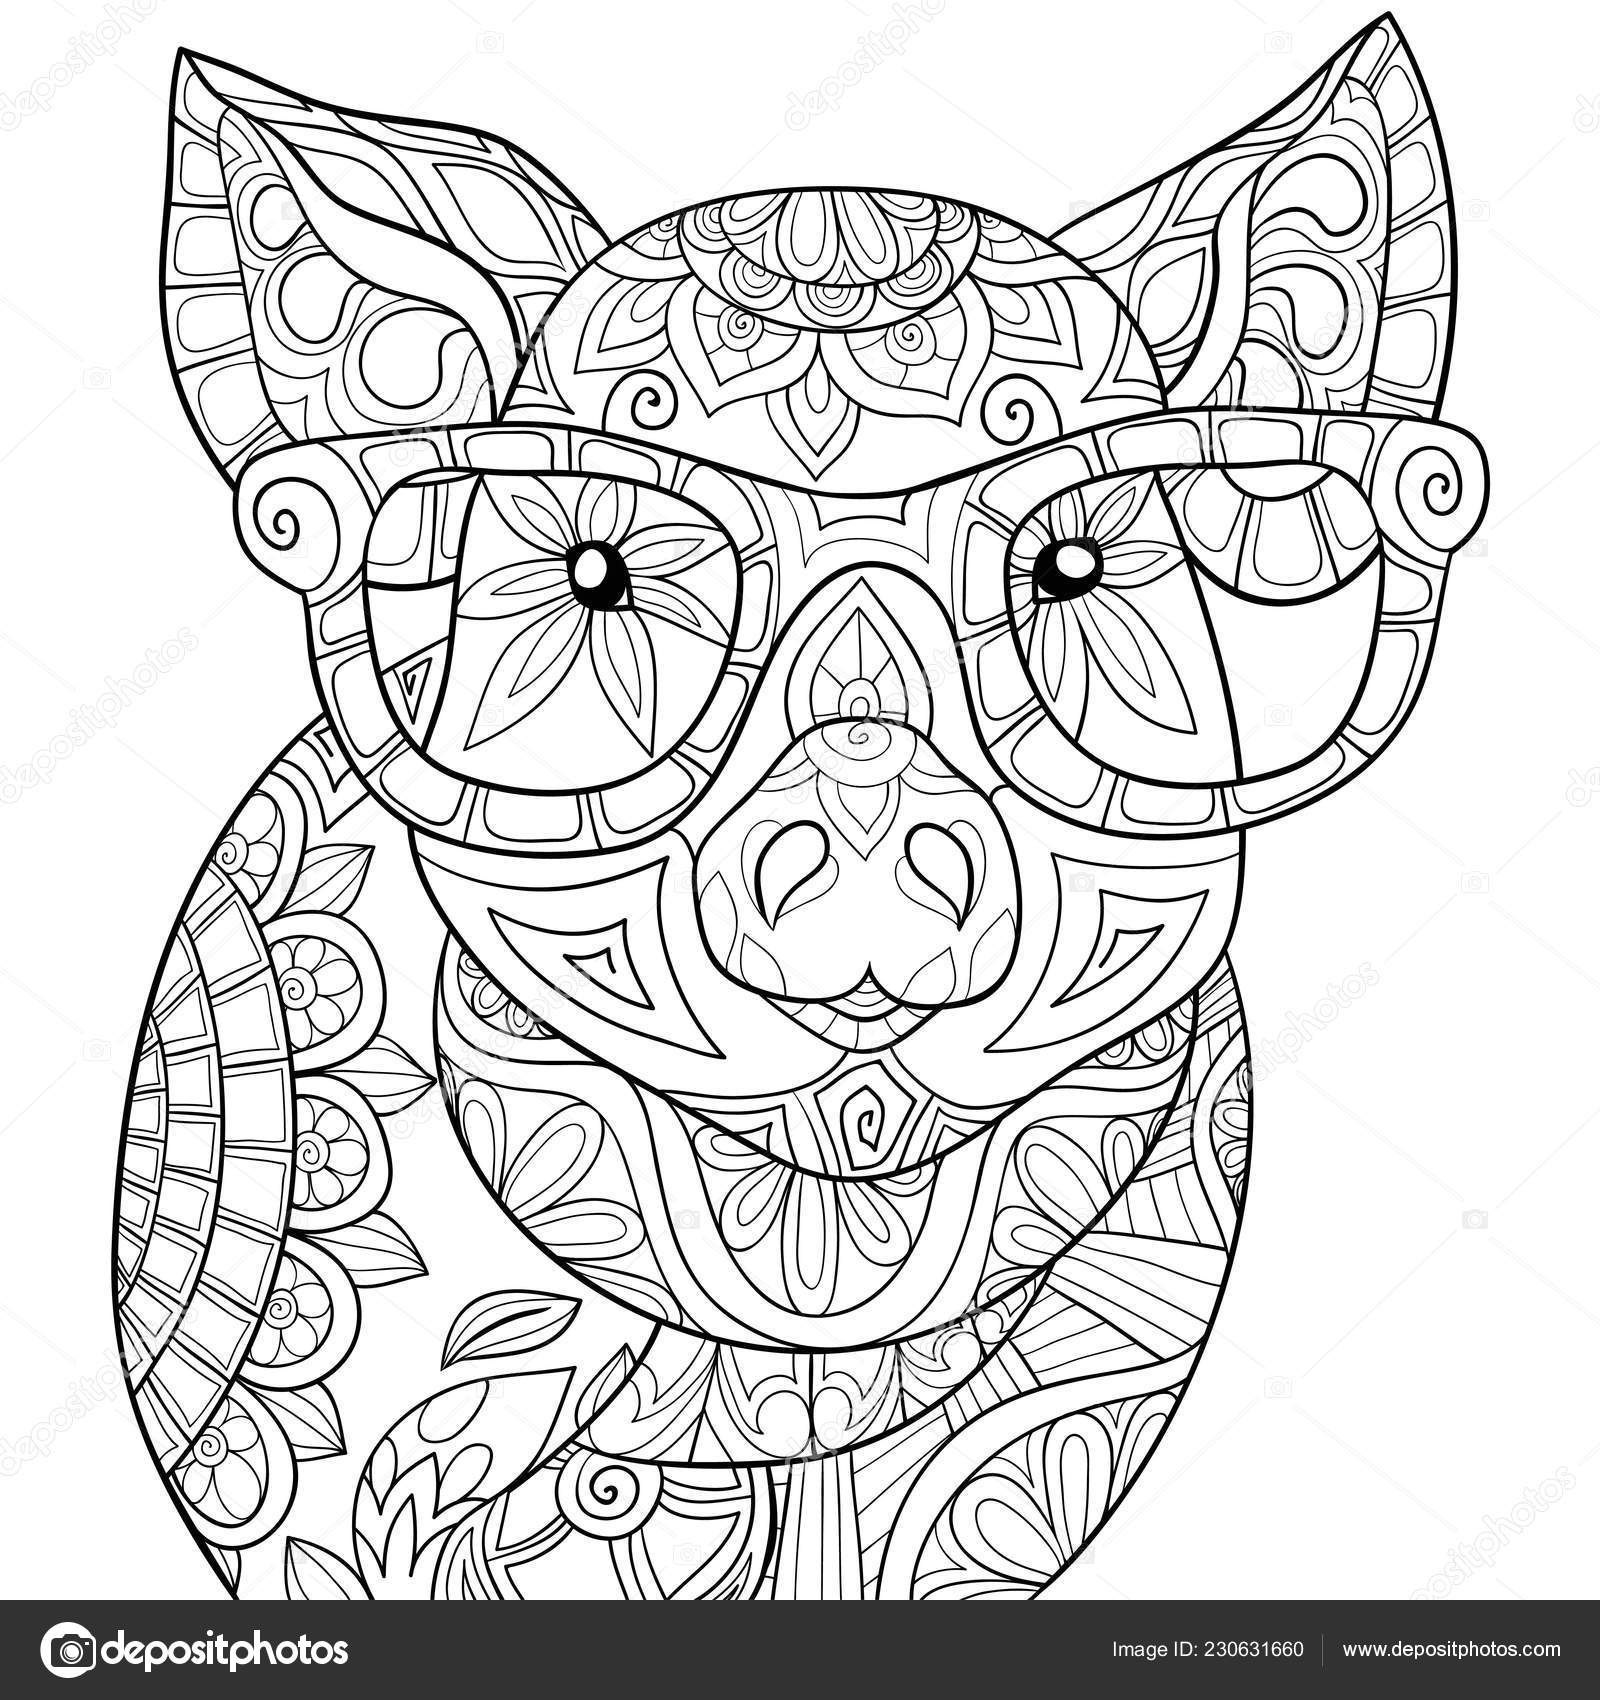 Images: pig with glasses | Cute Pig Wearing Glasses Image ...